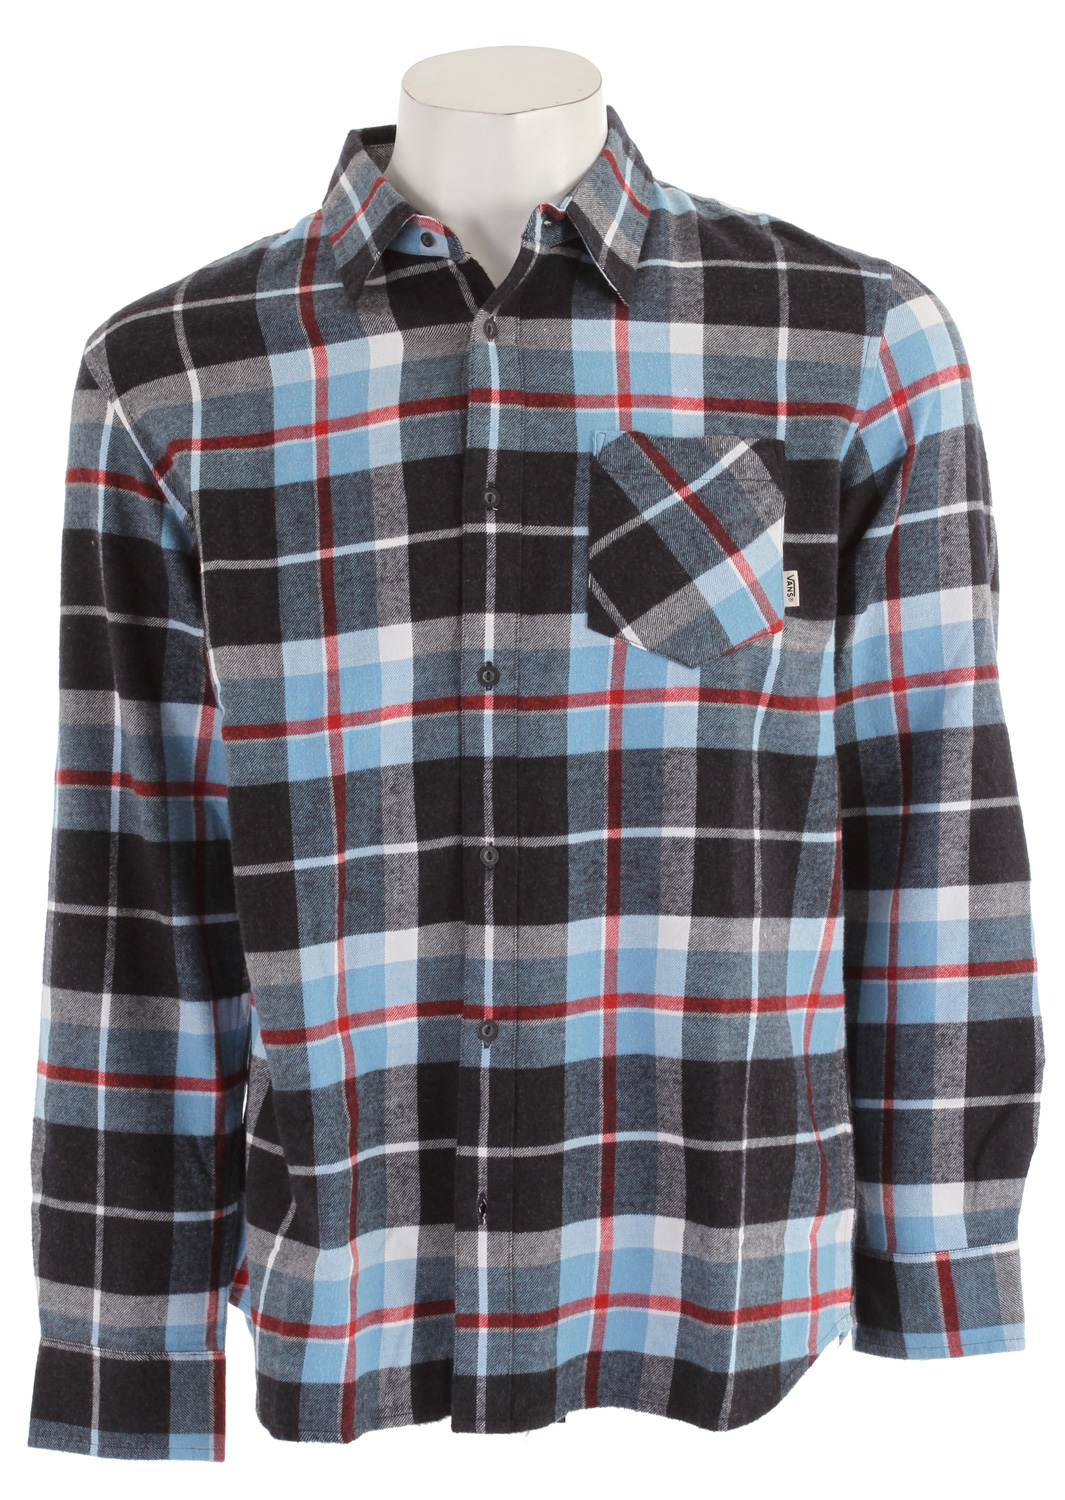 Skateboard Key Features of the Vans Clockout Shirt: 100% Cotton Flannel Long Sleeve button down - $23.96